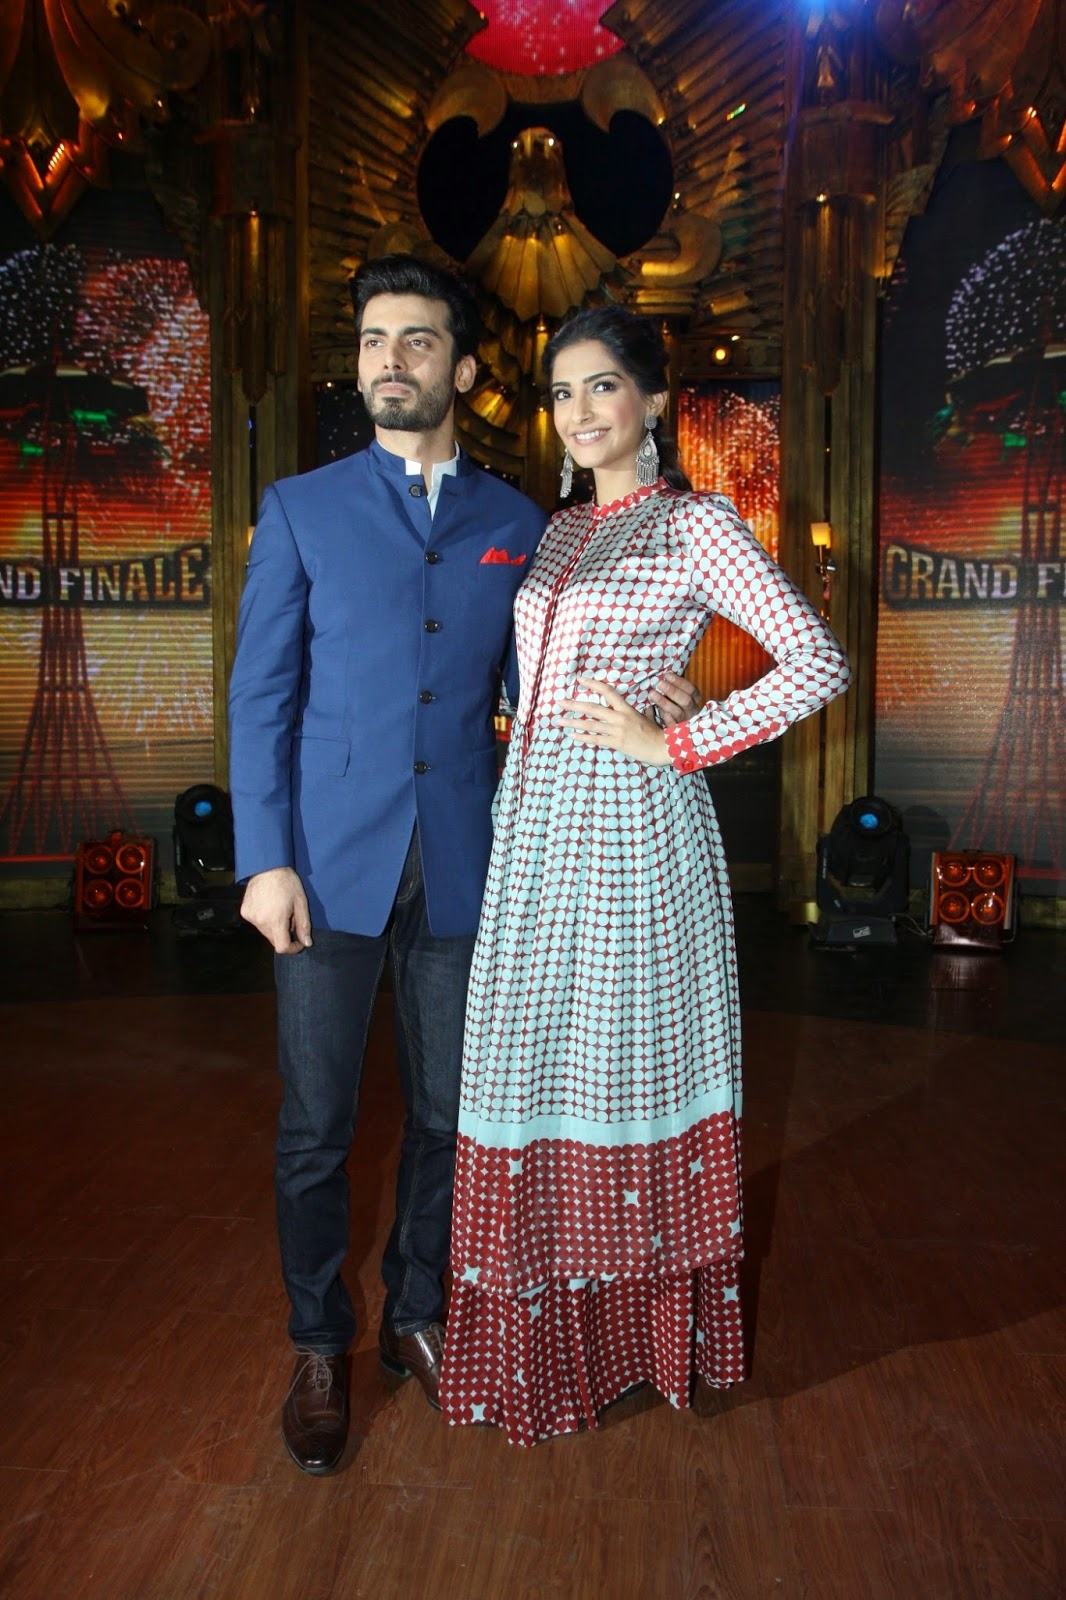 http://4.bp.blogspot.com/-s2w80l_lzCg/U9ZfFvLUwGI/AAAAAAABv_0/VgY0oVMsZGk/s1600/+Sonam+&+Fawad+Khan+at+Promotion+of+%27Khoobsurat%27+on+Entertainment+Ke+Liye+Kuch+Bhi+Karega+(5).JPG